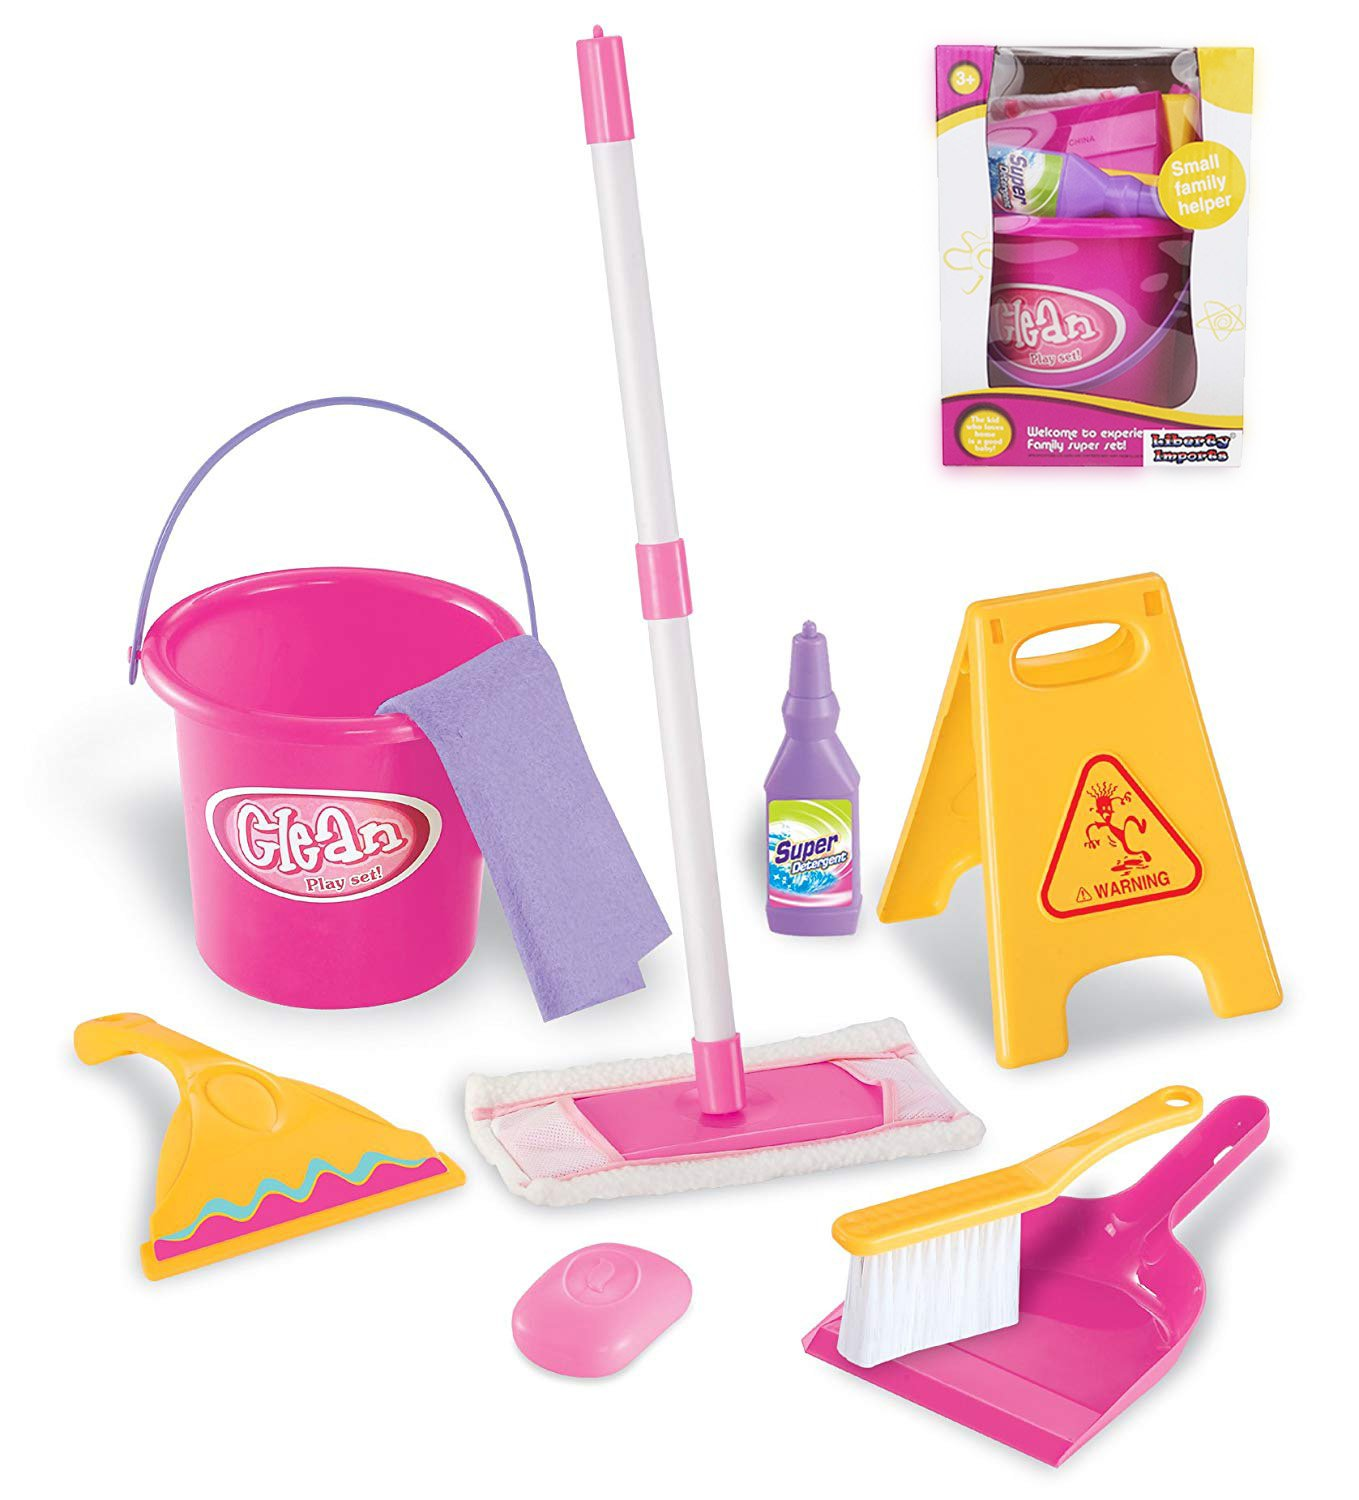 Liberty Imports Little Helper Pretend Play Kids Toy Cleaning Supplies Set with Mop, Bucket, and Accessories by Liberty Imports